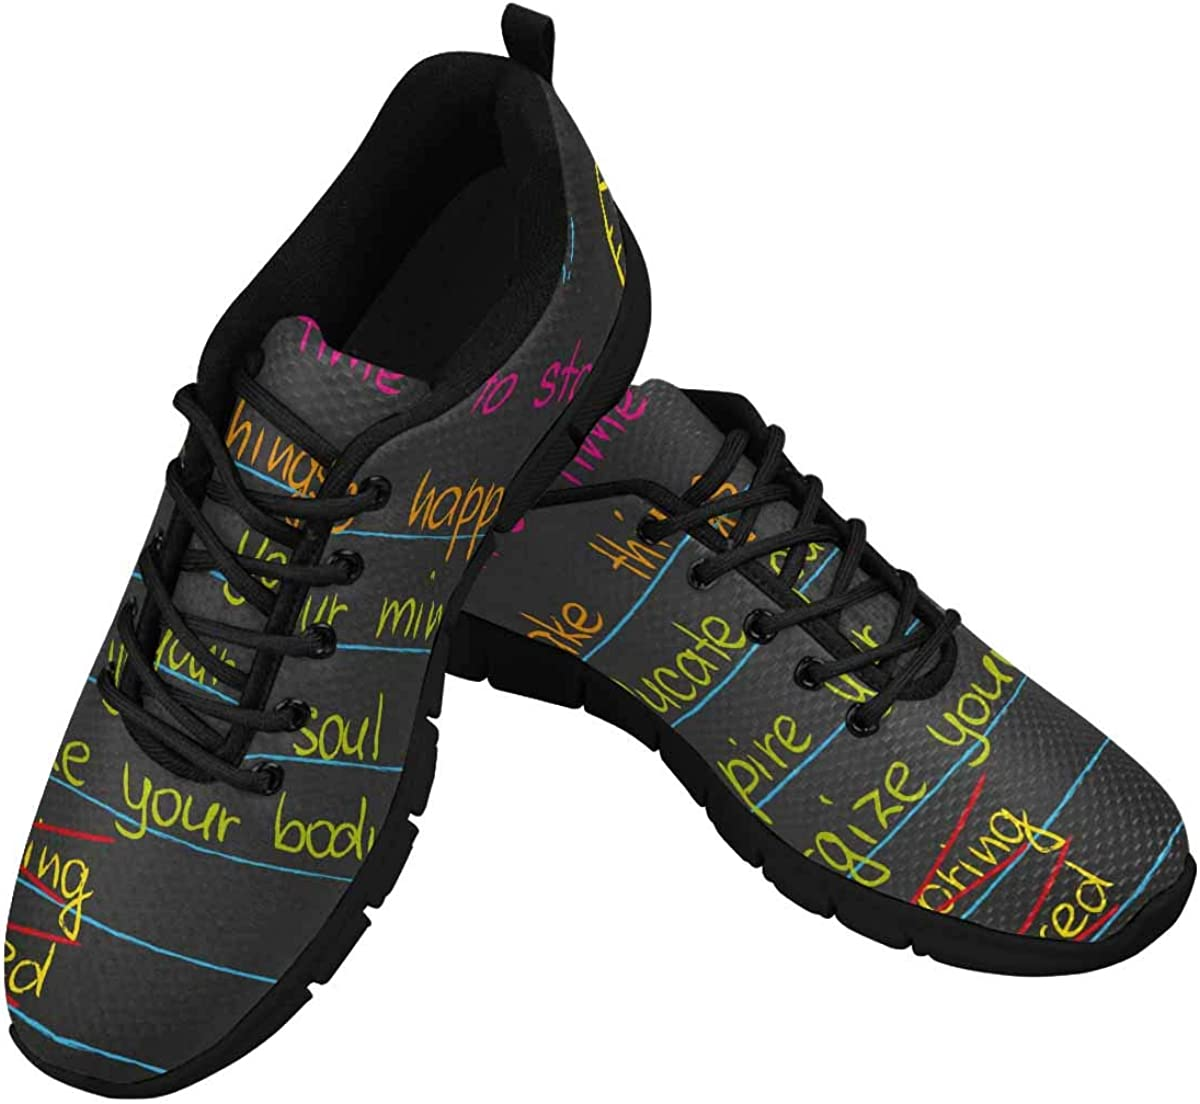 INTERESTPRINT Educate Your Mind, Inspire Your Soul Women's Athletic Mesh Breathable Casual Sneakers